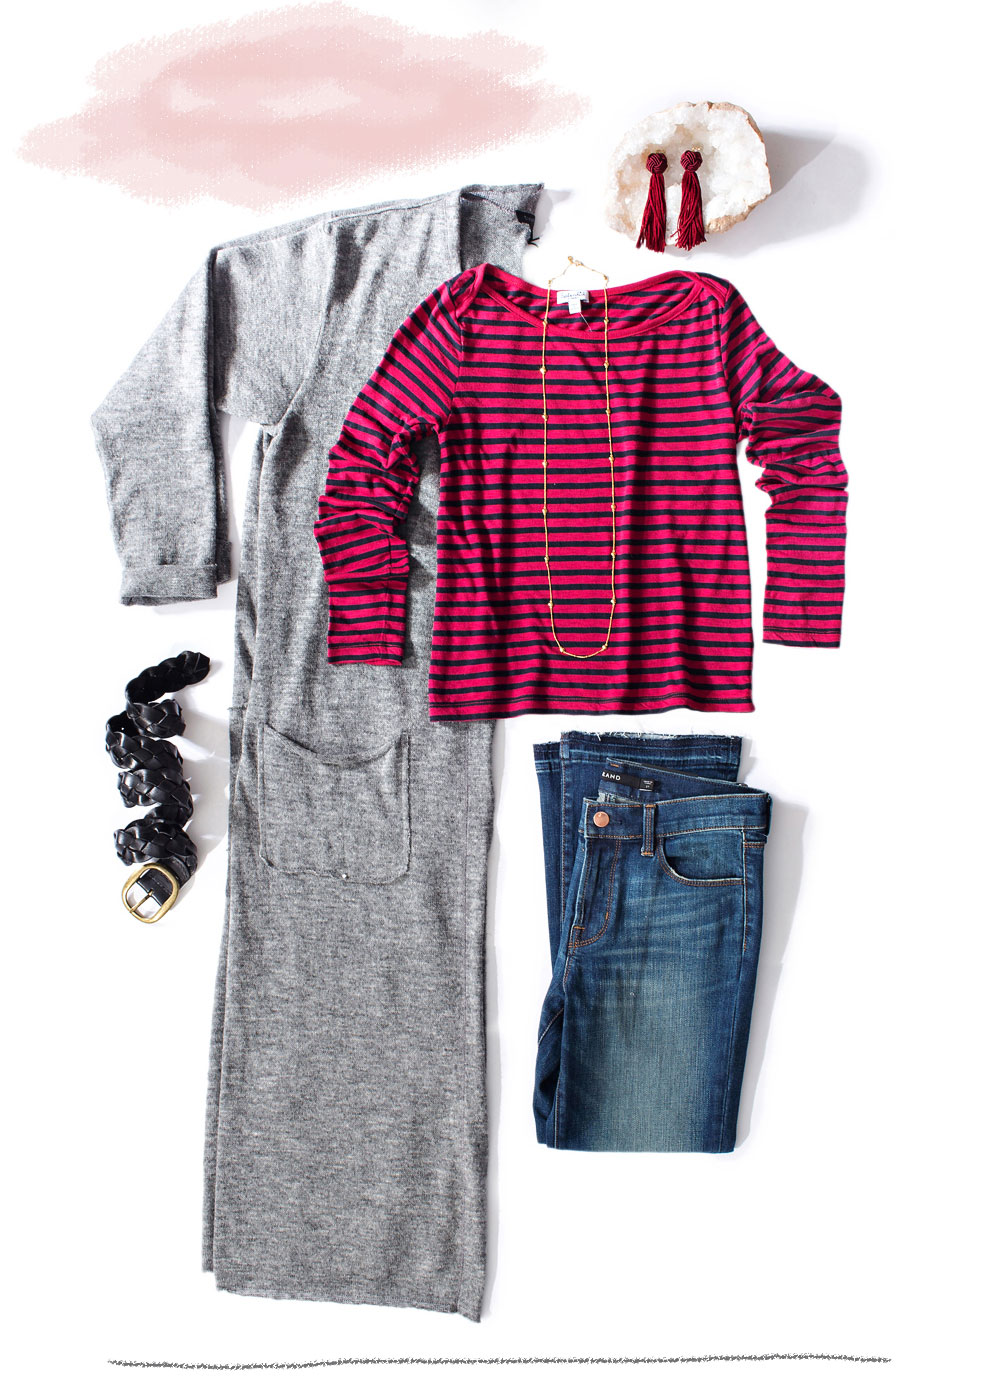 red striped shirt styled with fringe crop flair denim and grey maxi cardigan